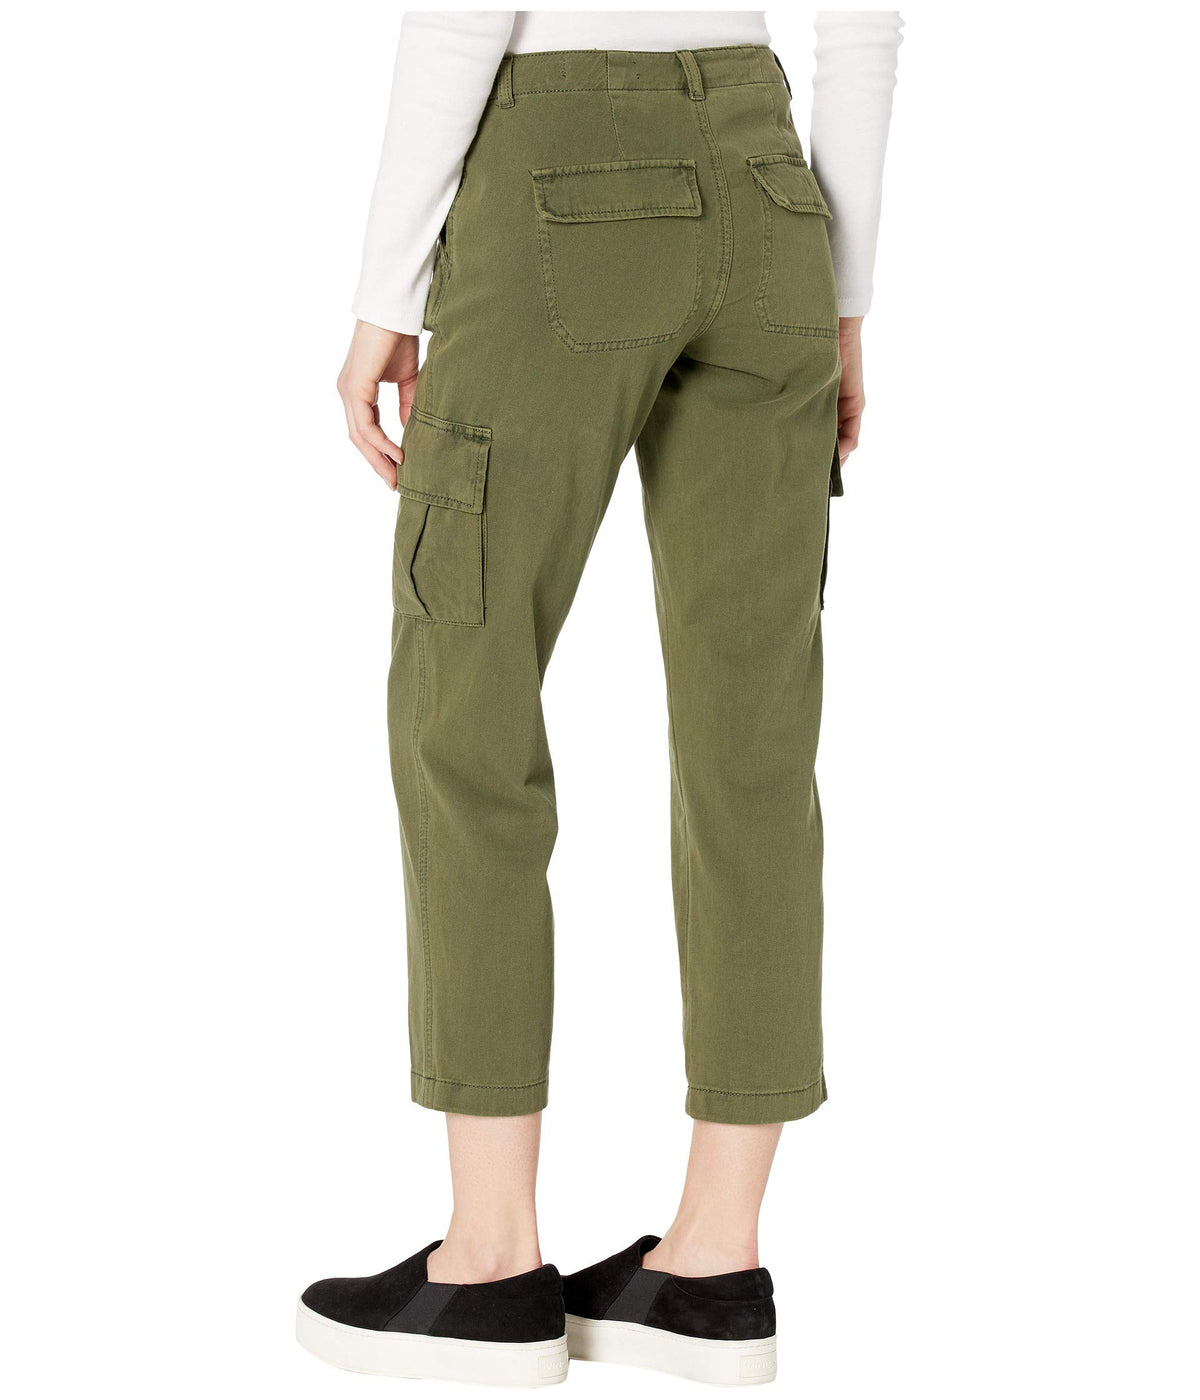 Twill Cargo Pants in Mary Jane